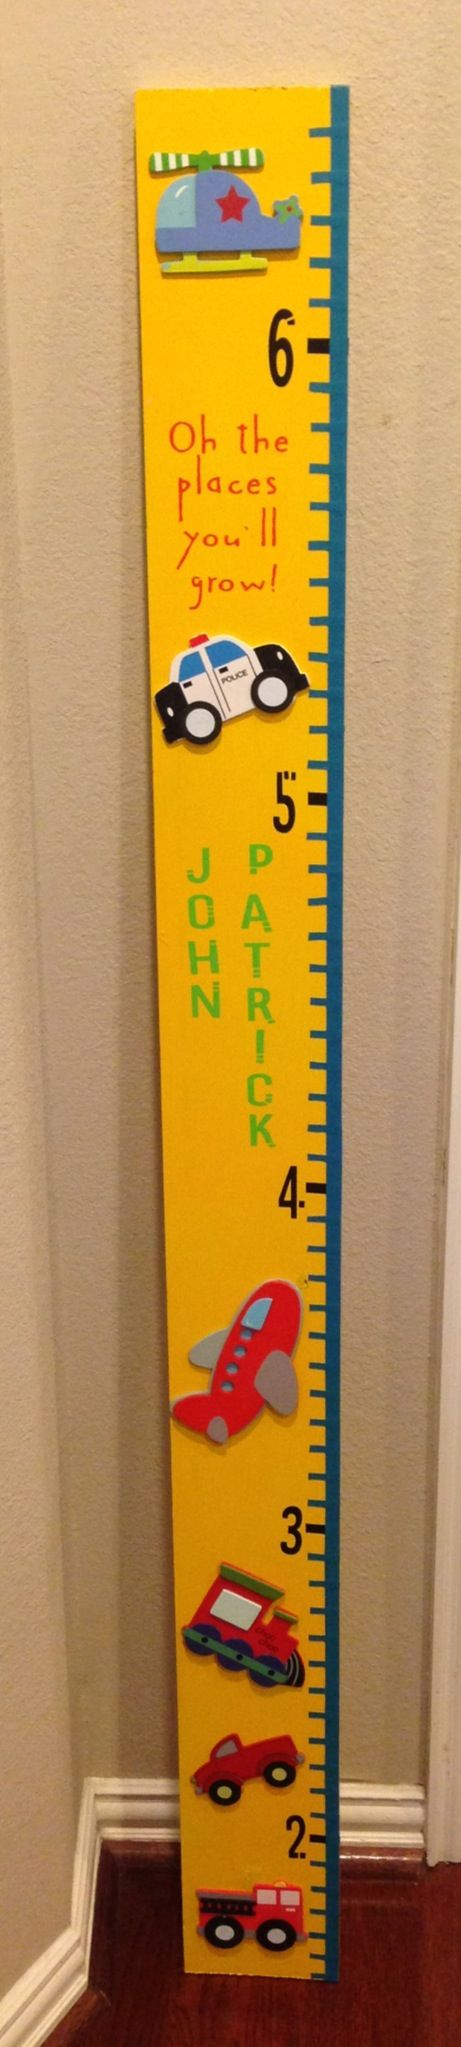 Cheap vinyl for crafts - Diy Boys Growth Chart Spray Painted A 1x6 Board Then Hot Glued Prepainted Shapes Bought